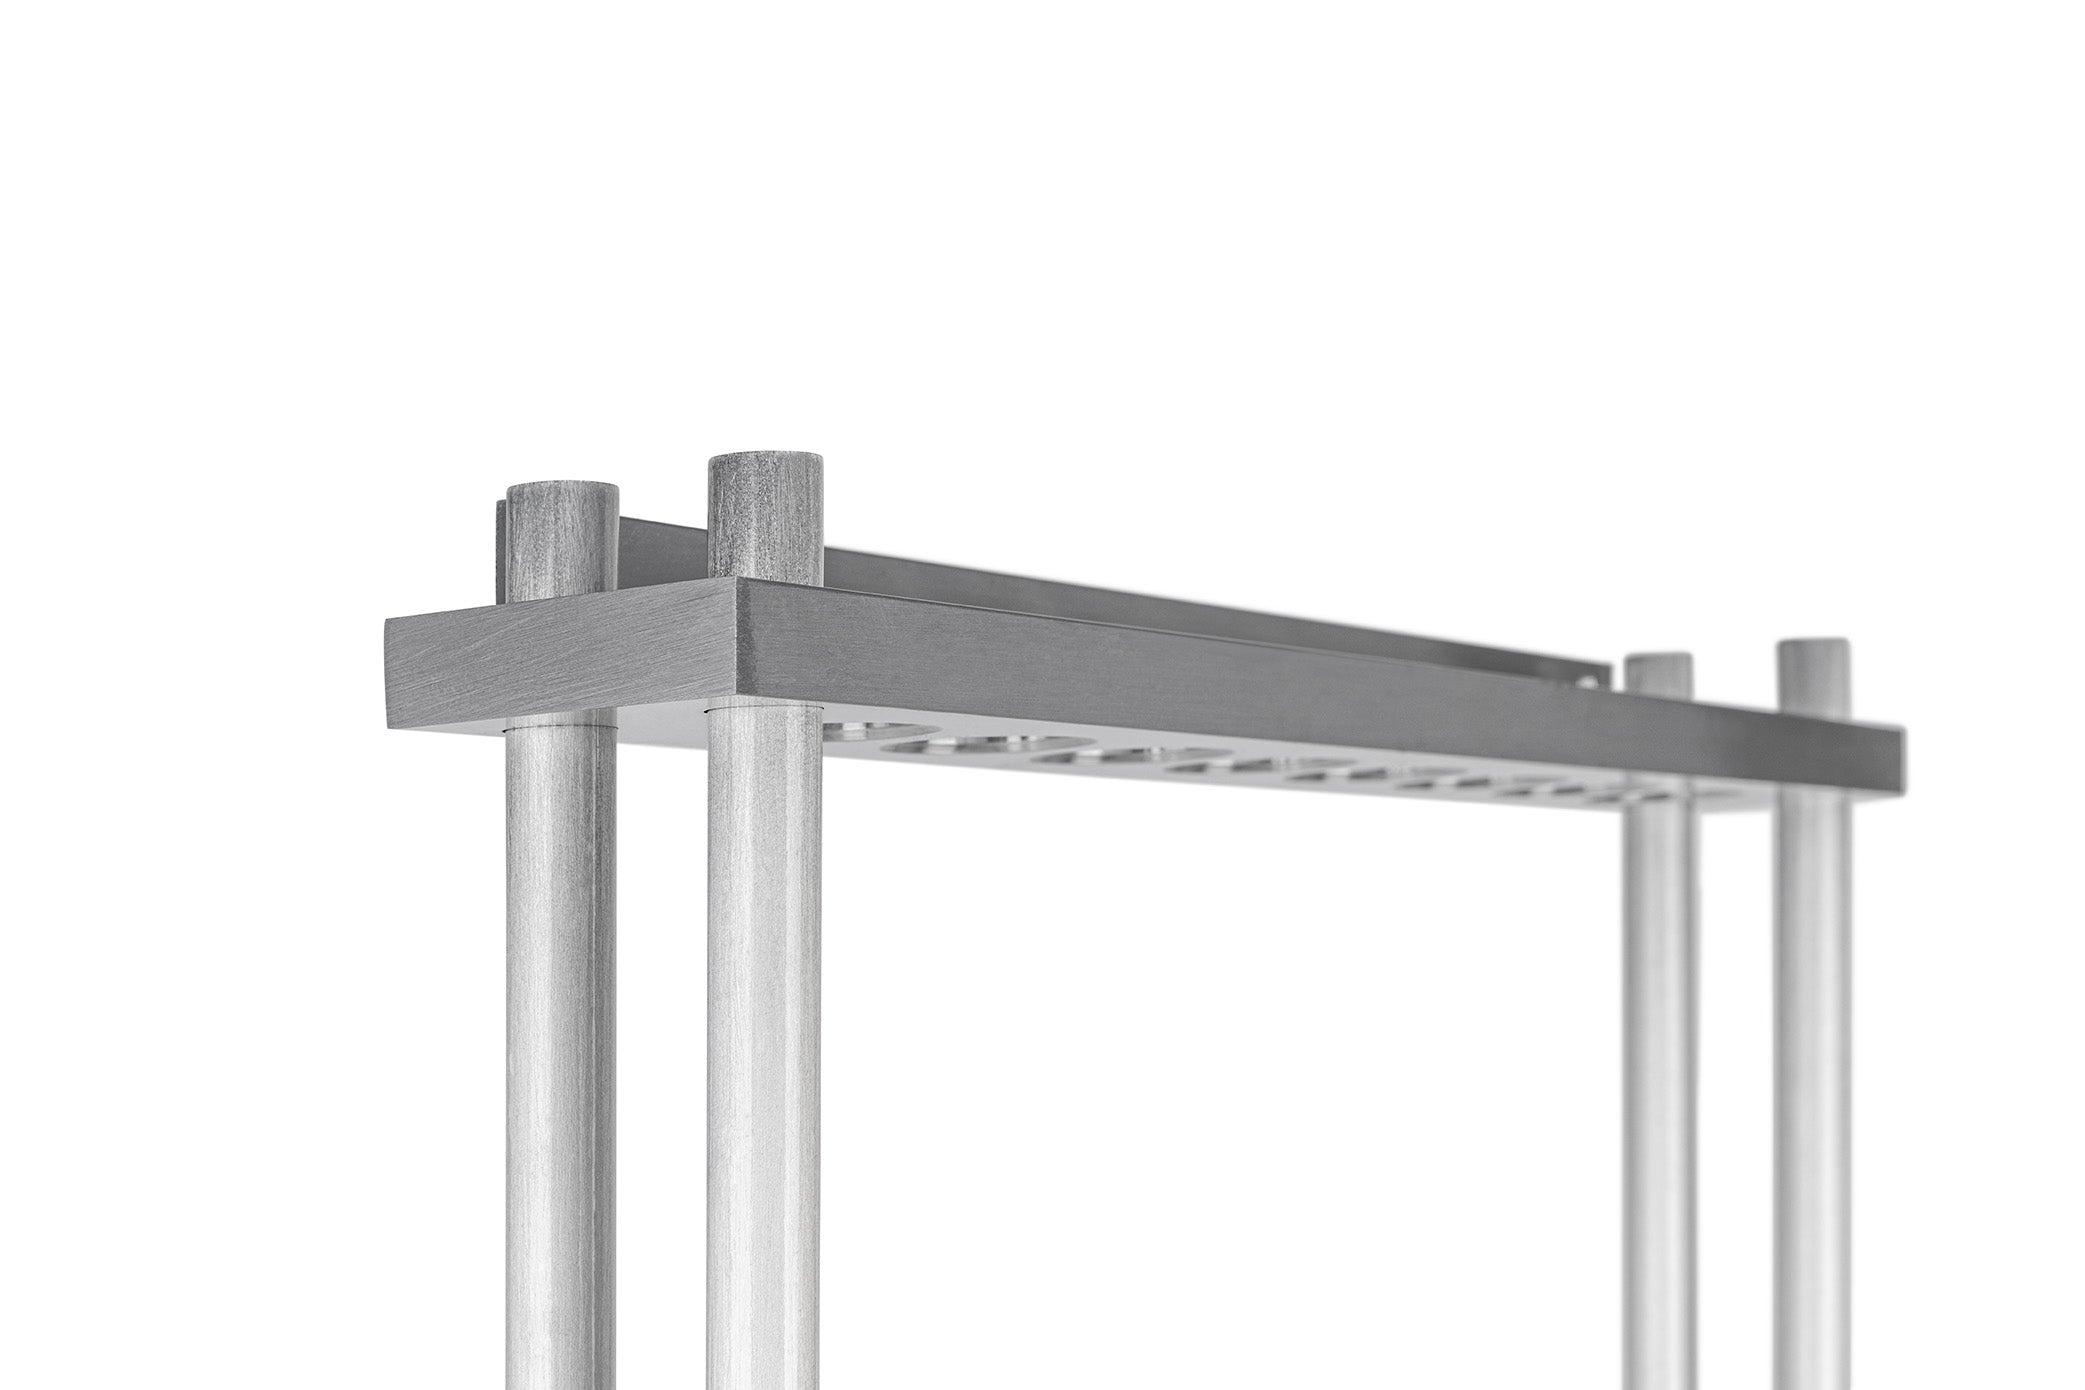 Aluminum Wall Rack #3 (Round Side Bars) - Blatt Billiards